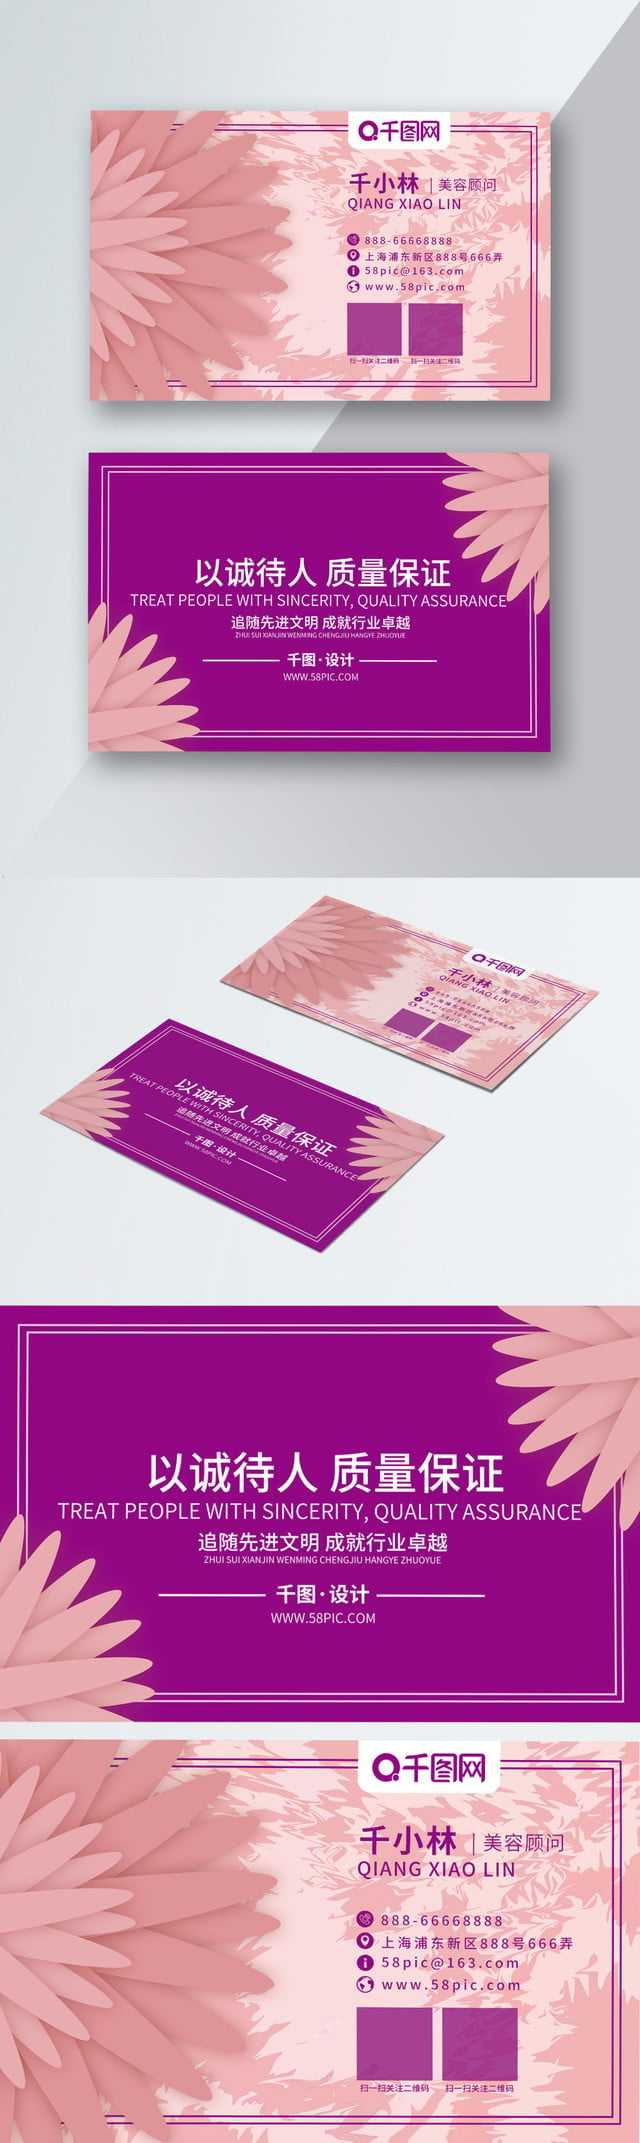 Mary Kay Business Card Mary Kay Business Card Template Mary Inside Mary Kay Business Cards Templates Free